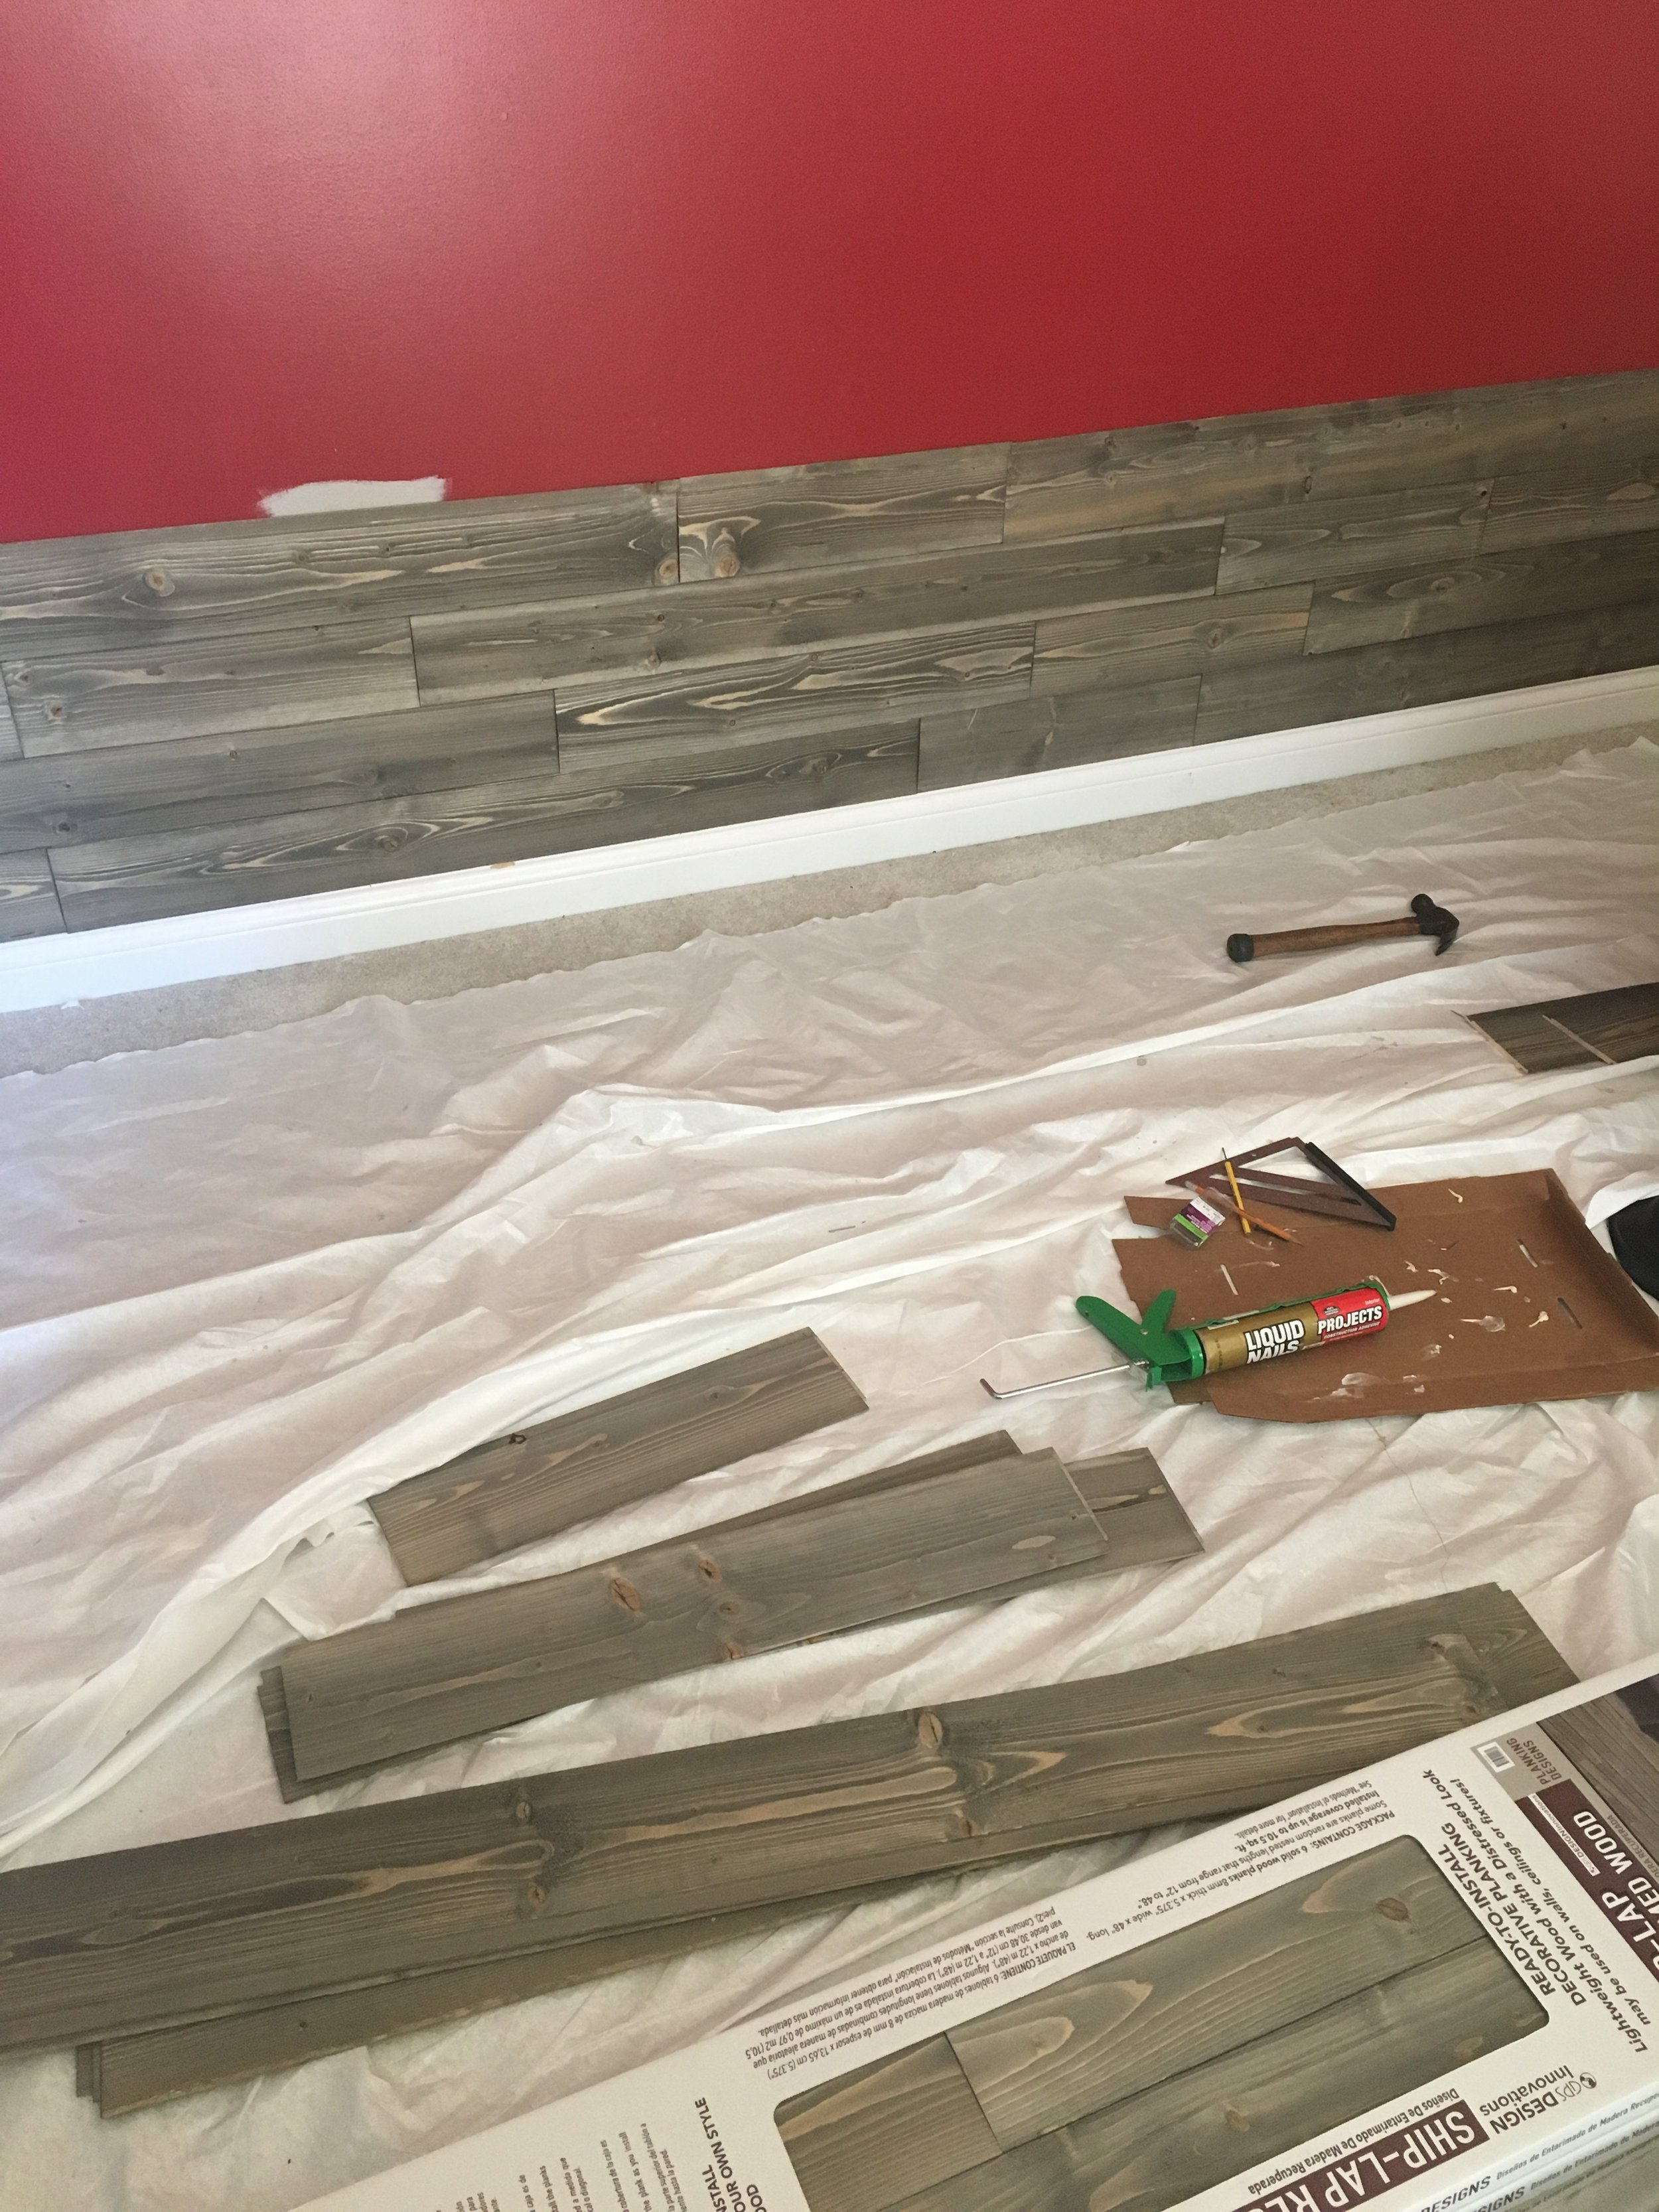 The walls went up easily for a stunning look. Make sure you have the lines and ends staggering. The materials can be easily found at your local hardware store in a variety of shades and styles.